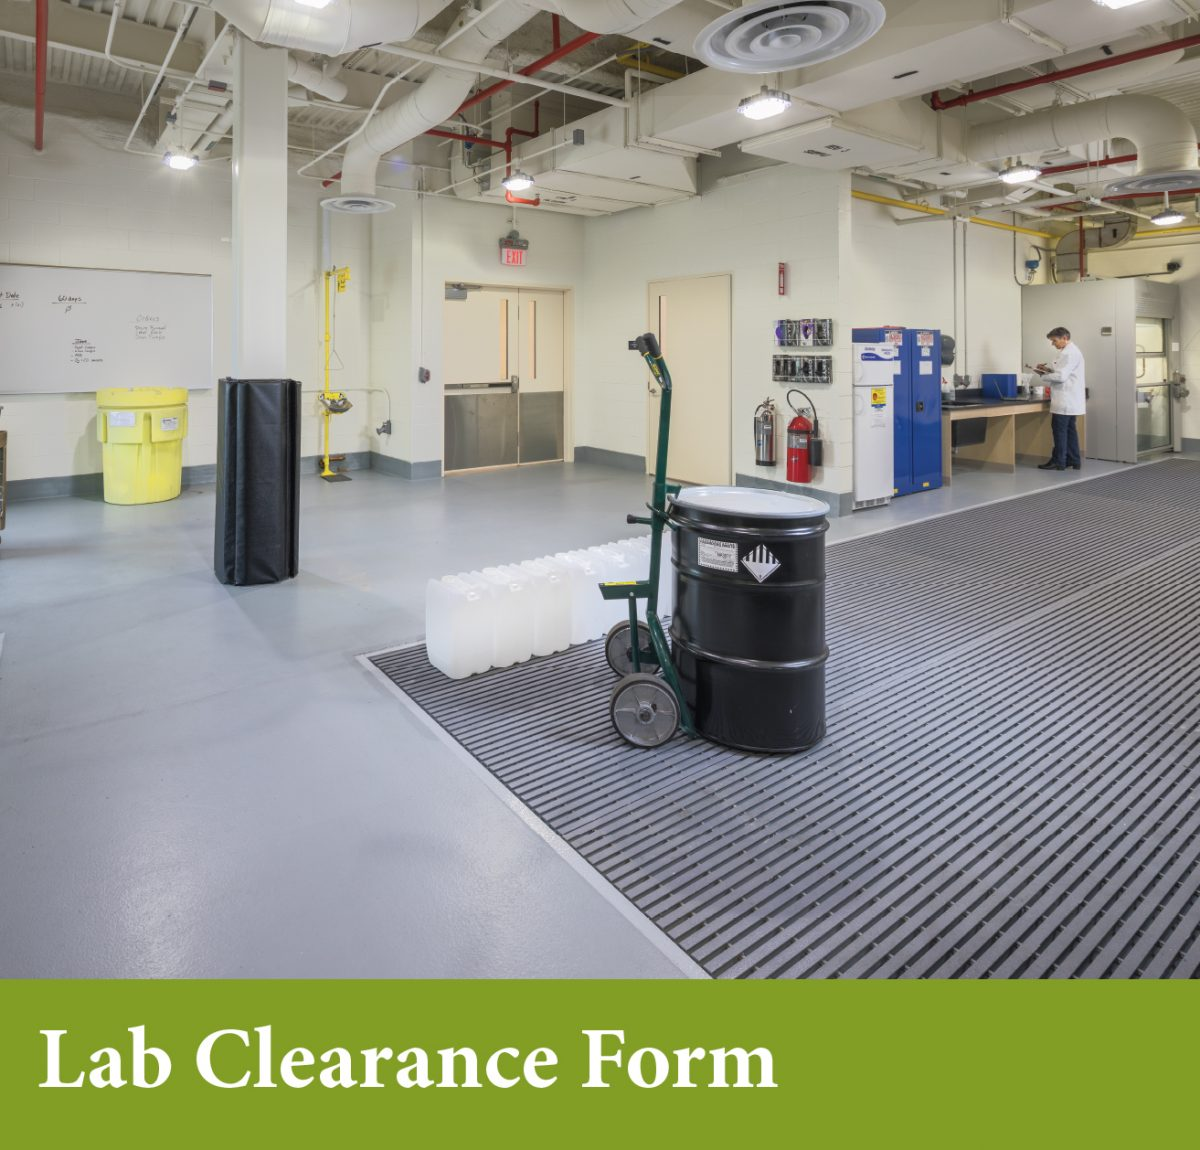 Lab Clearance Form